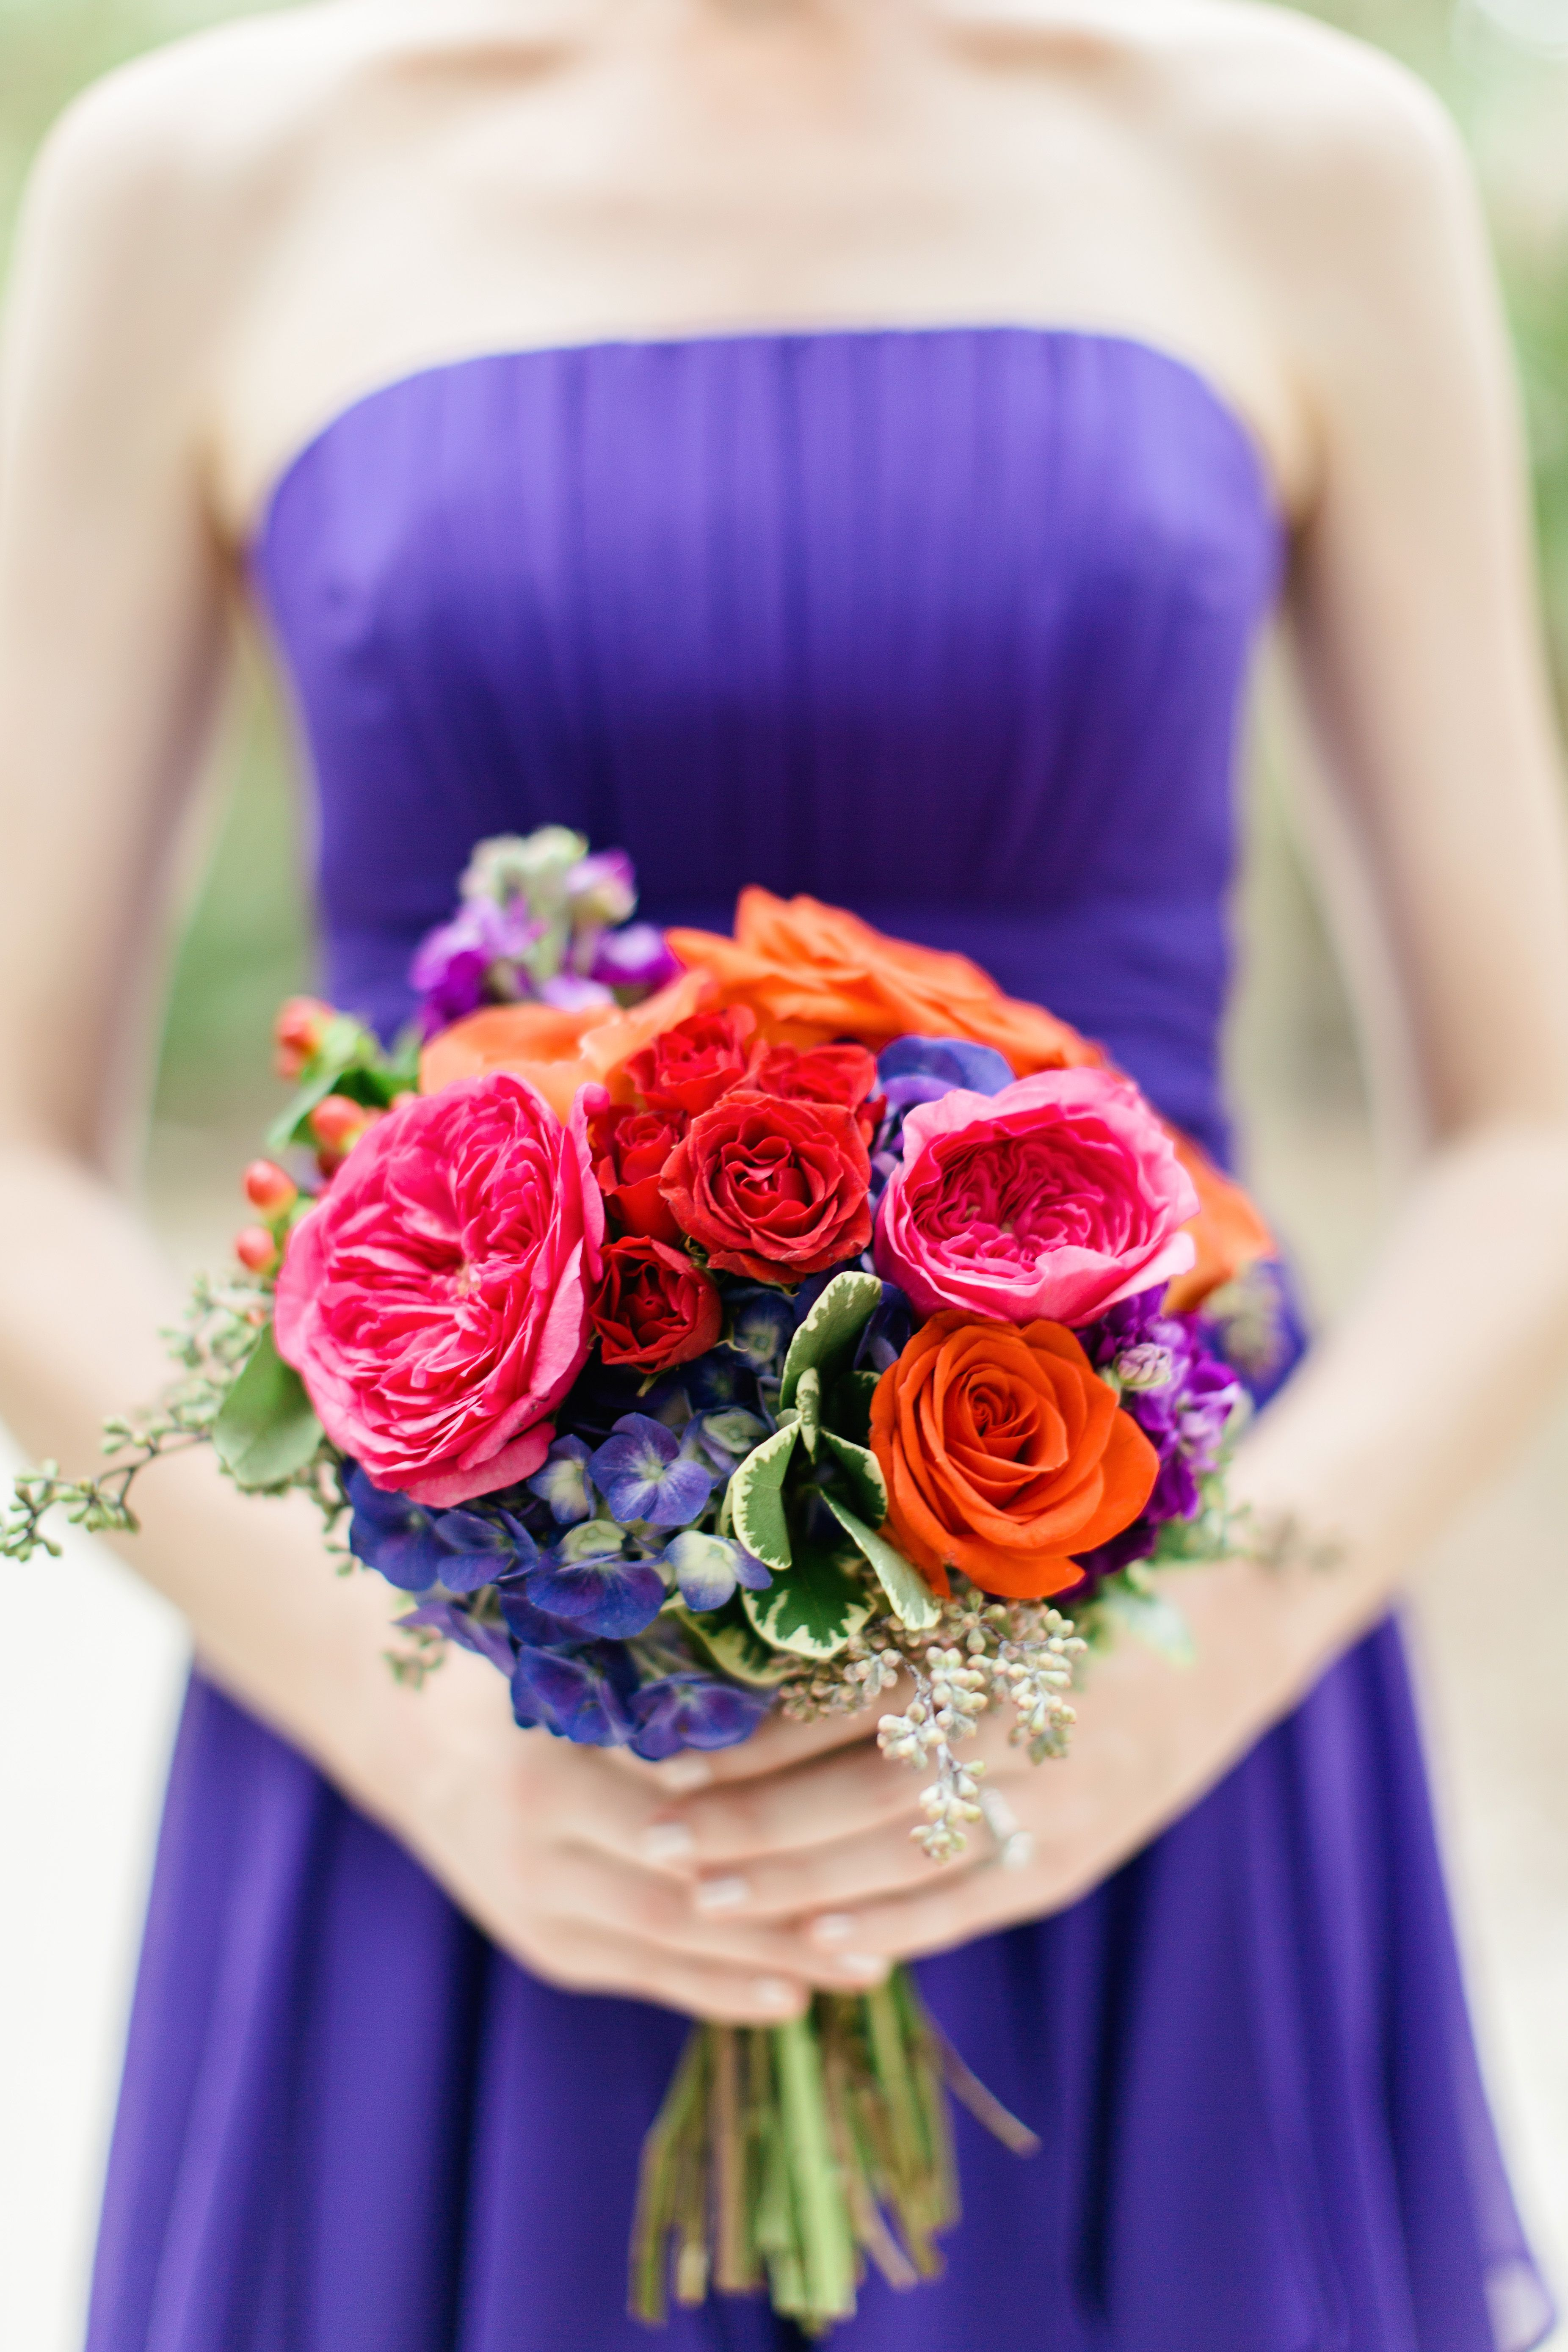 Bridesmaid bouquet with regency purple bridesmaid dresses from bridesmaid bouquet with regency purple bridesmaid dresses from davids bridal ombrellifo Image collections